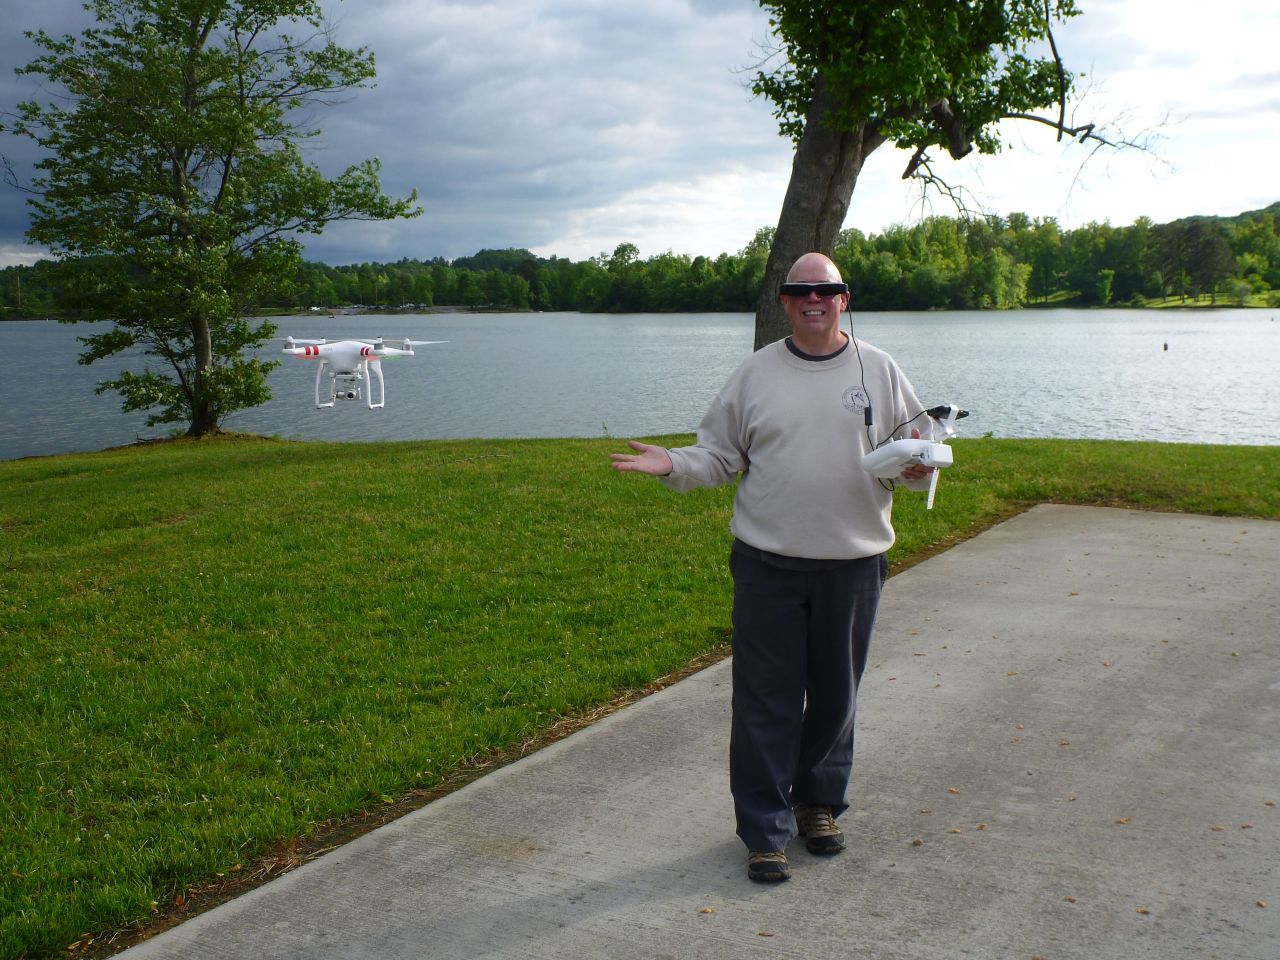 David And His New Quadcopter